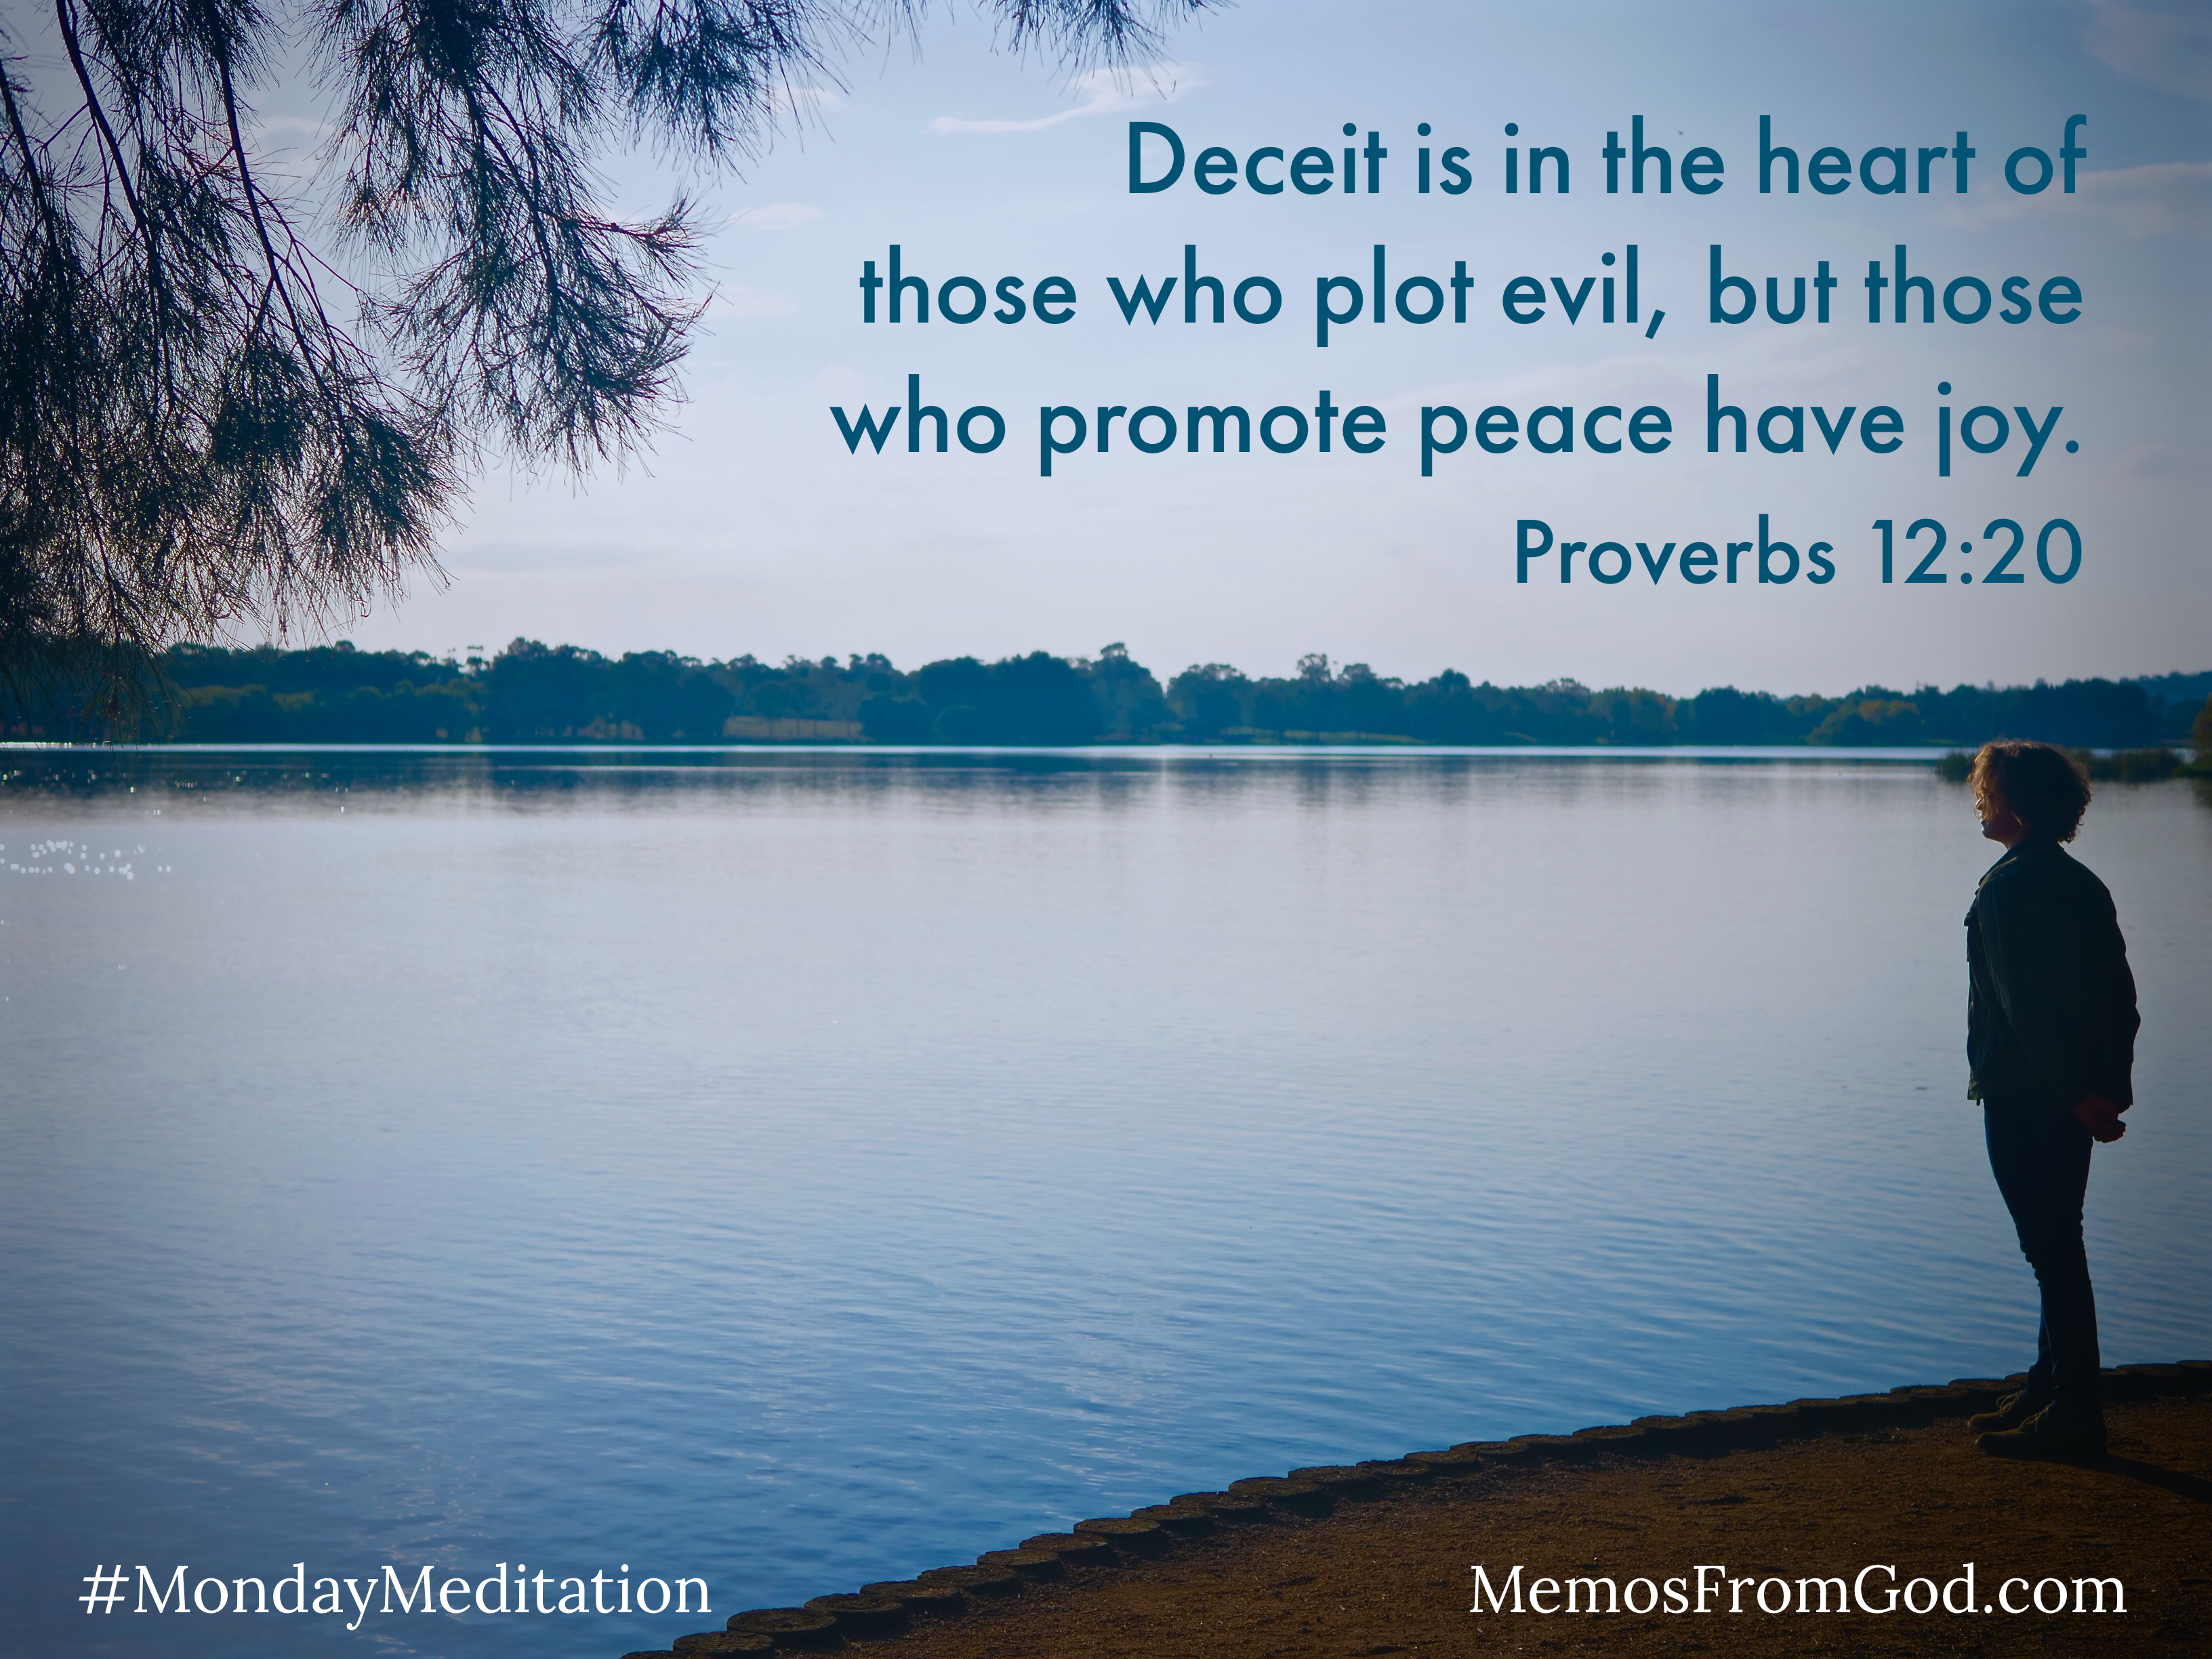 A woman standing at the edge of a still blue lake, looking peacefully out over it. Caption: Deceit is in the heart of those who plot evil, but those who promote peace have joy. Proverbs 12:20